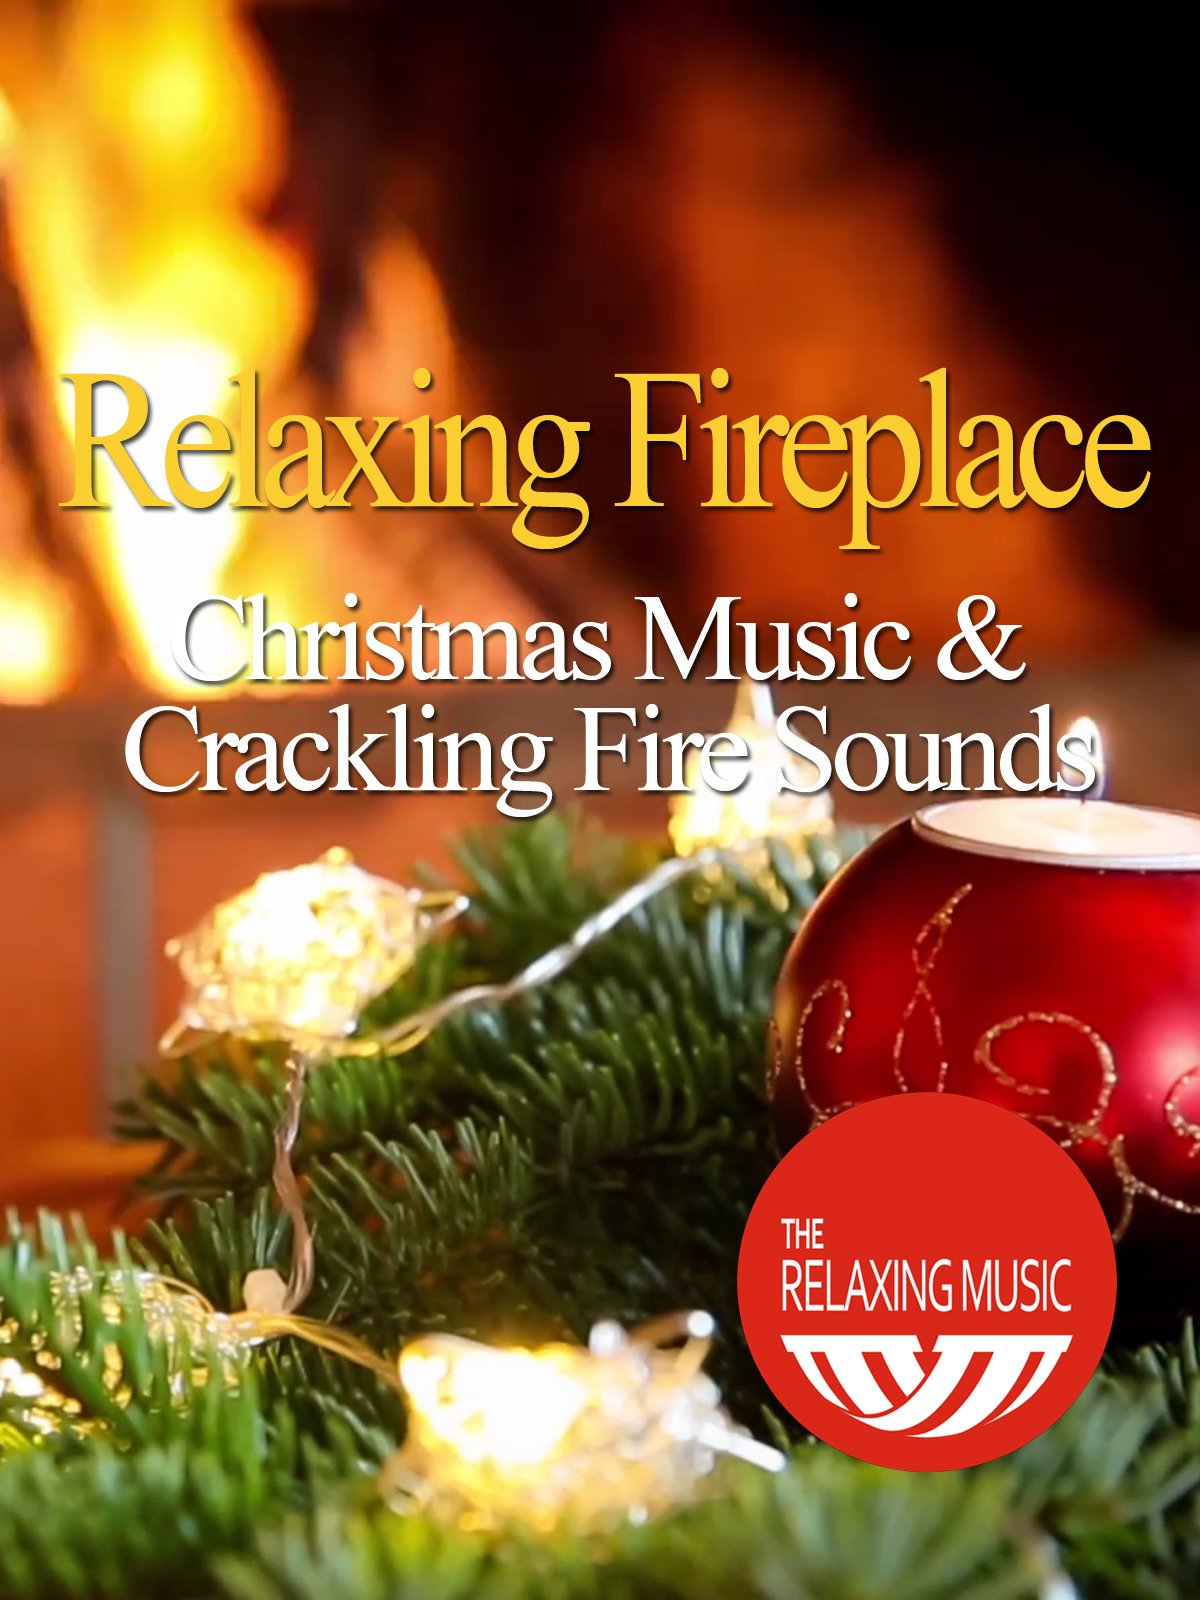 Amazon.com: Relaxing Fireplace Christmas Music with Crackling Fire ...